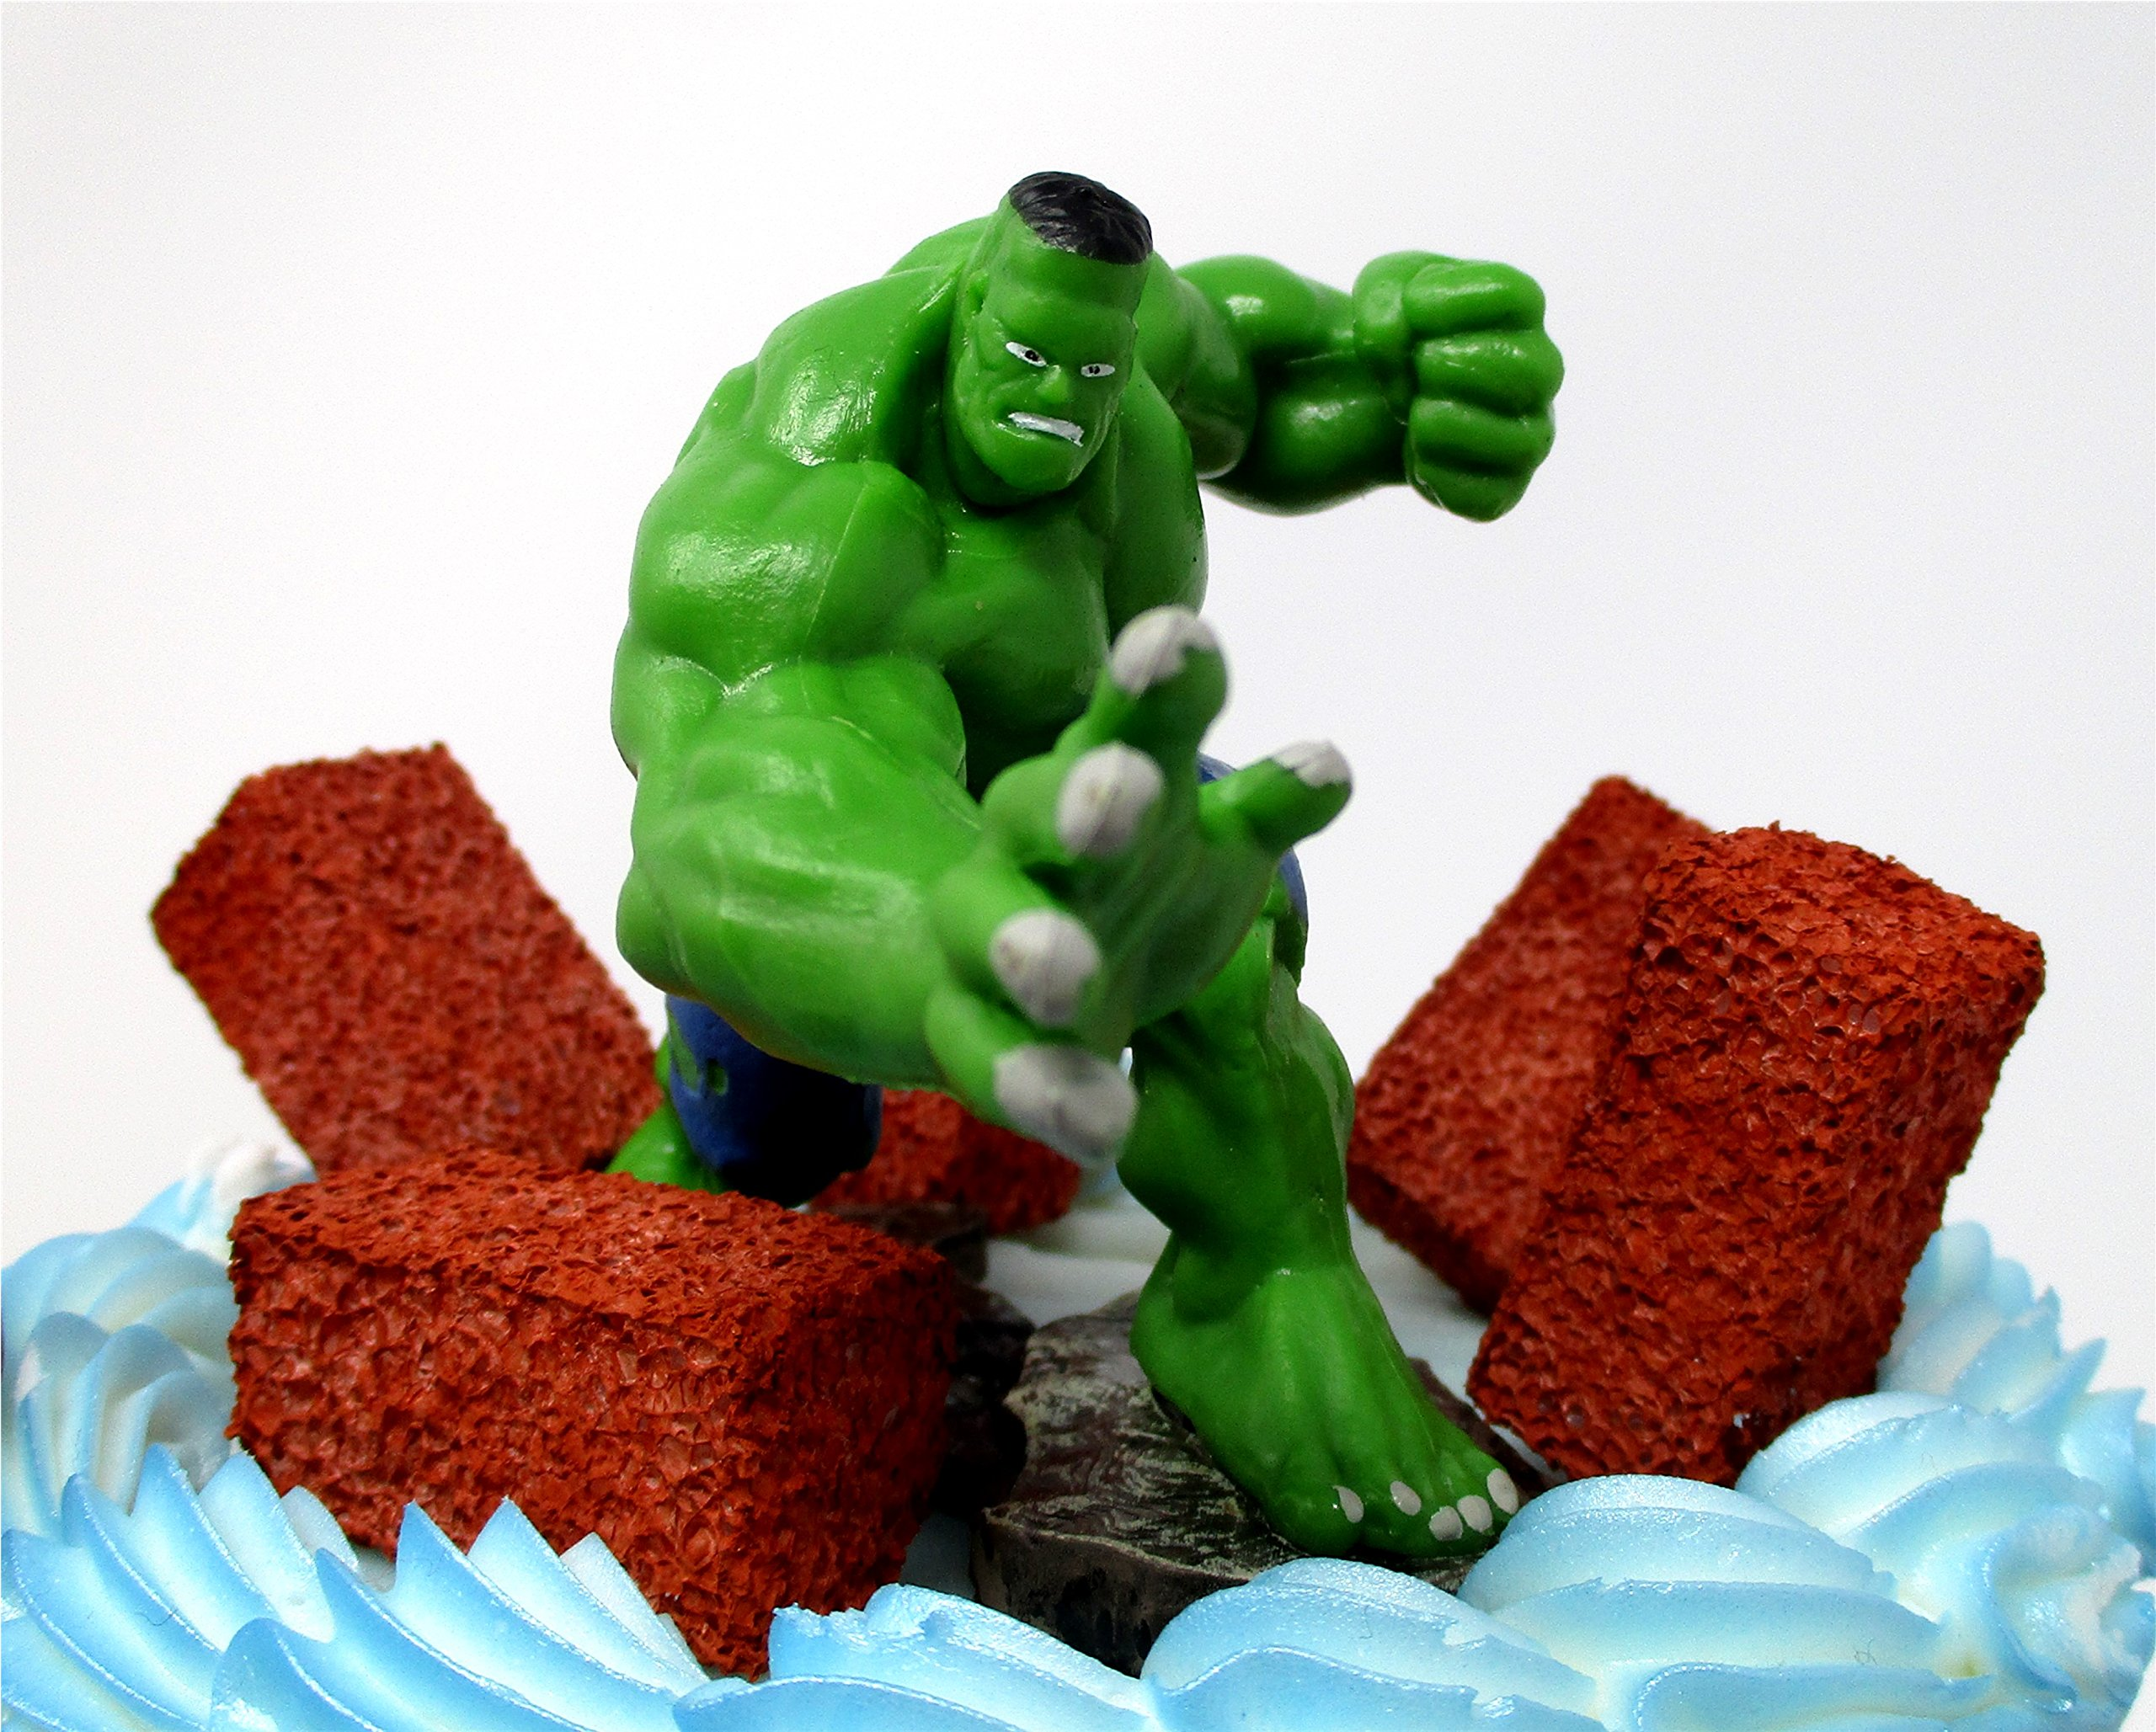 AVENGERS Deluxe Super Hero Birthday Cake Topper Set Featuring Avenger Figures and Decorative Themed Accessories by Cake Toppers (Image #4)